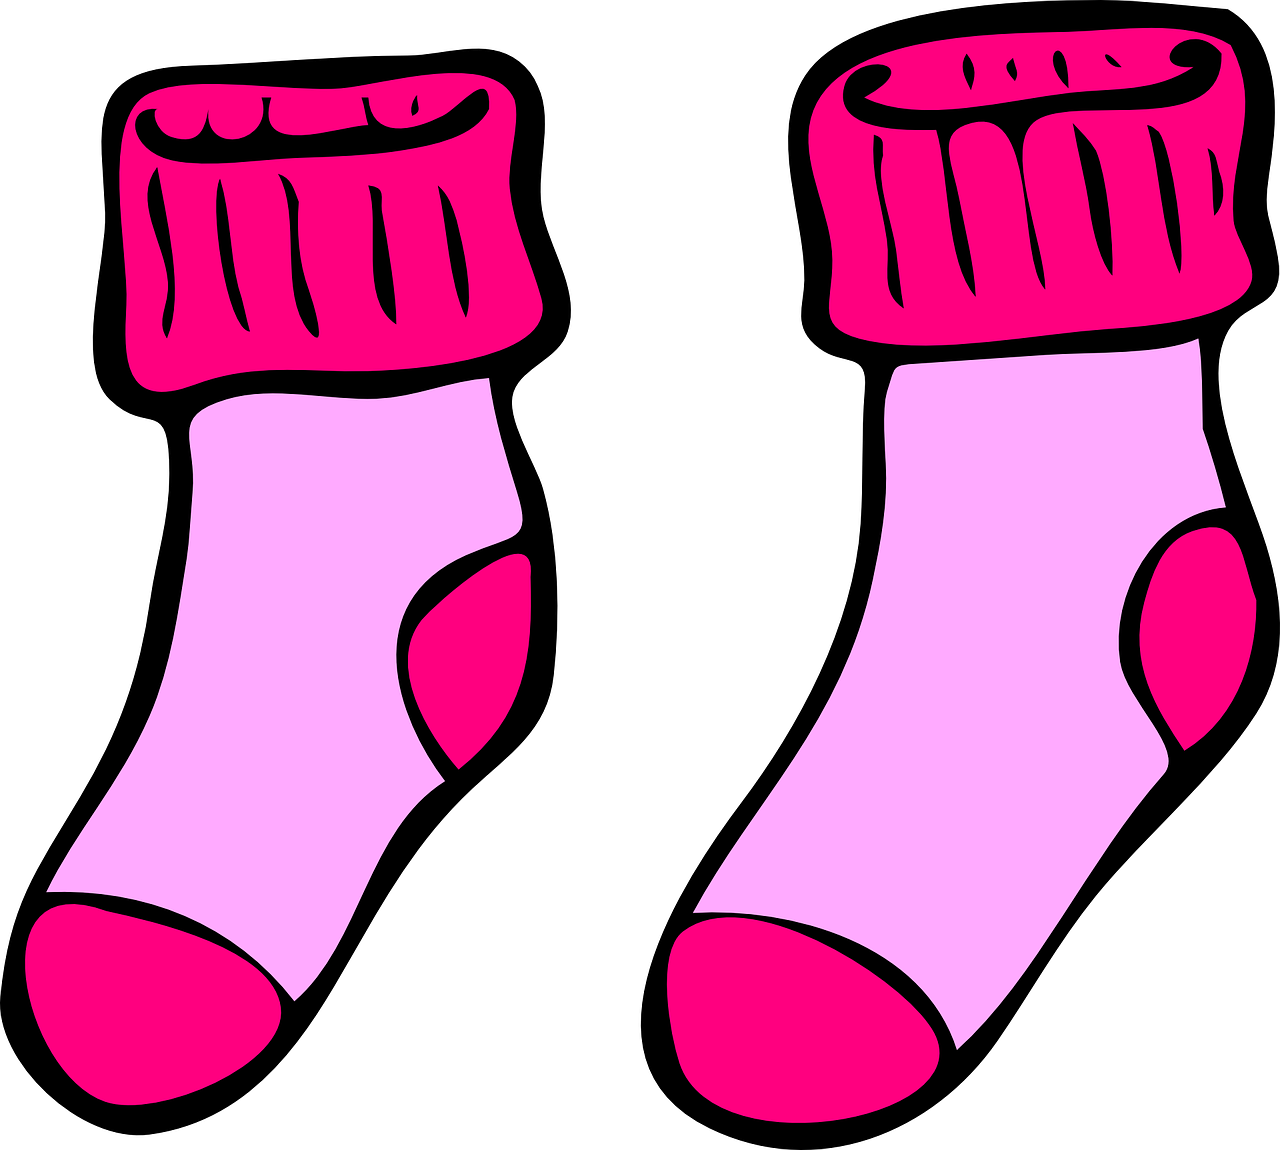 socks cute pink free vector graphic on pixabay https creativecommons org licenses publicdomain